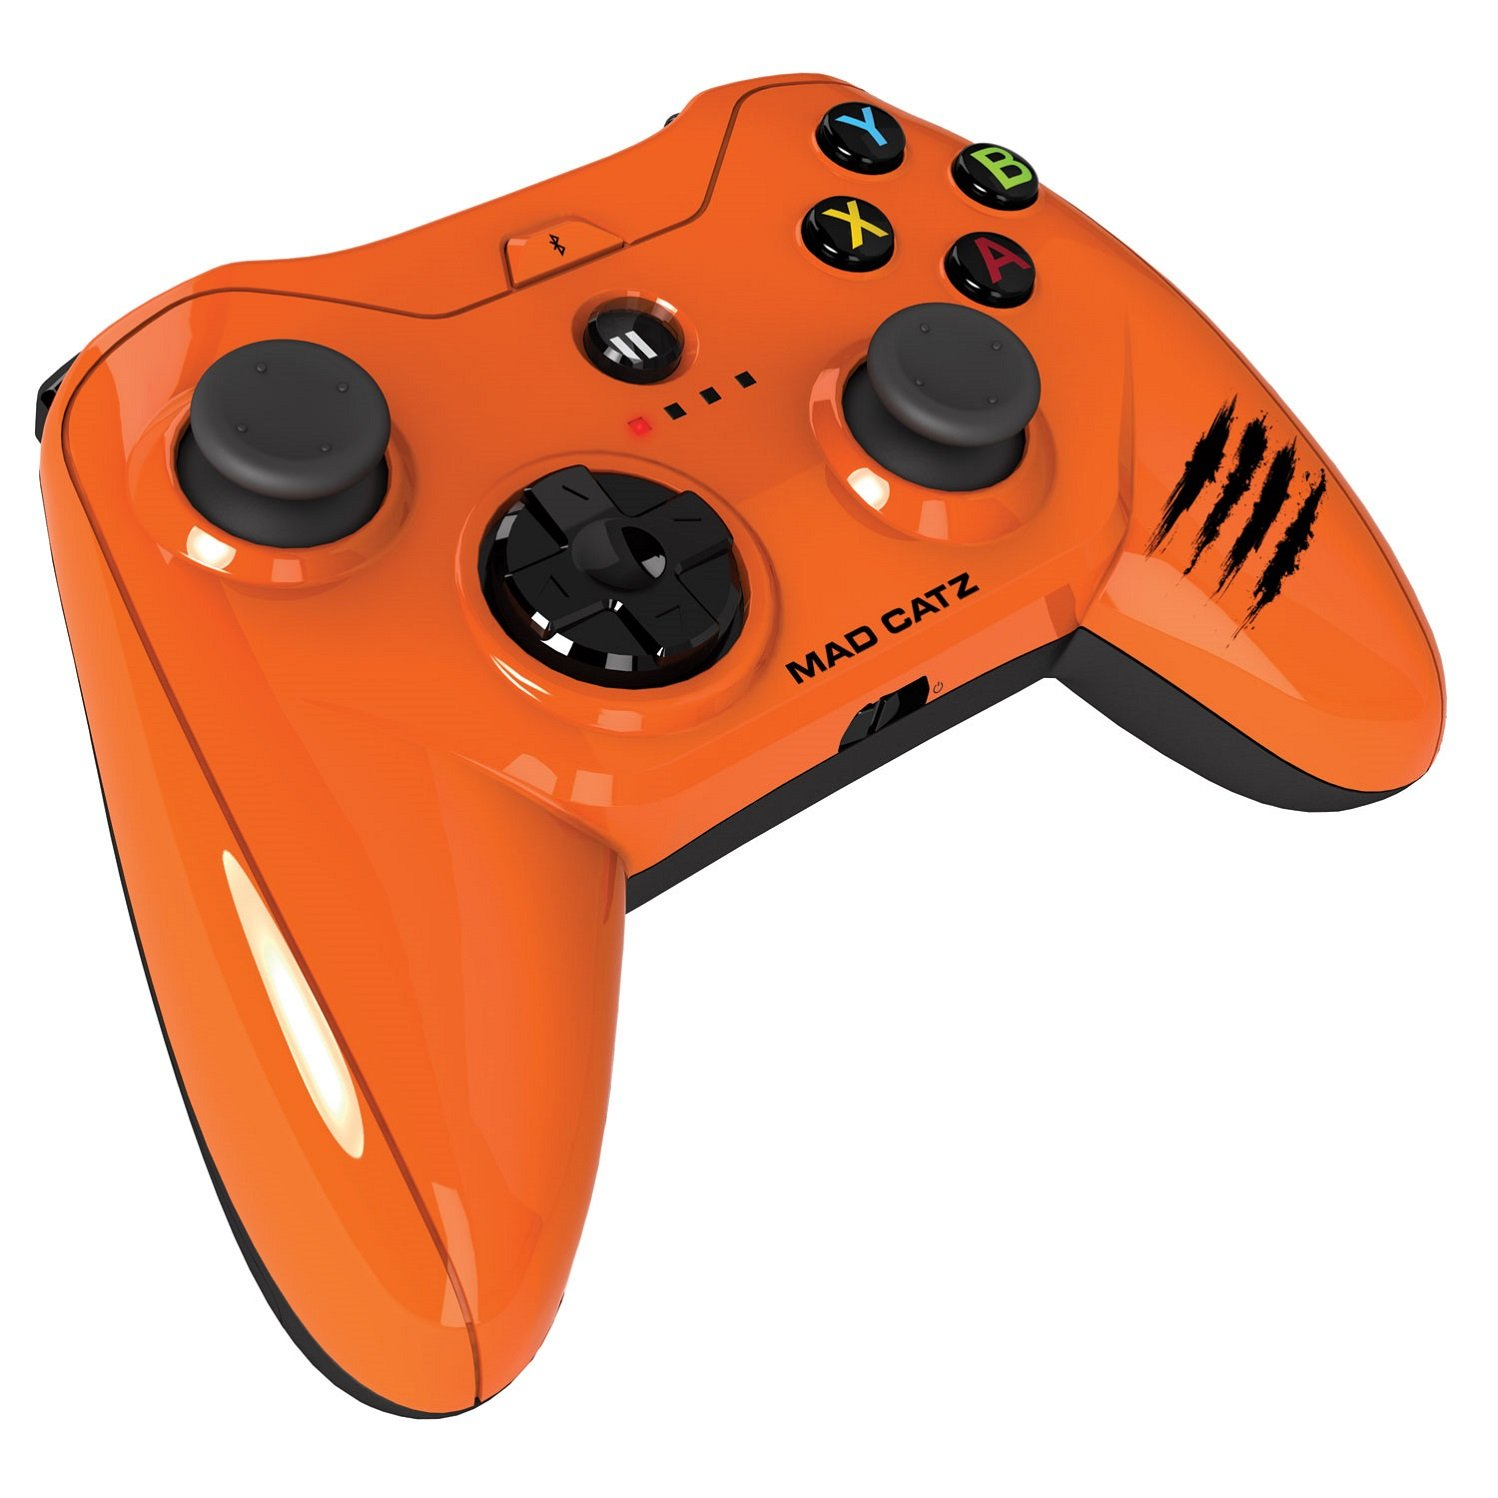 Mad Catz Micro C.T.R.L.i Mobile Gamepad Made for Apple IOS, Apple iPhone 7, iPod and iPad by Mad Catz (Image #2)